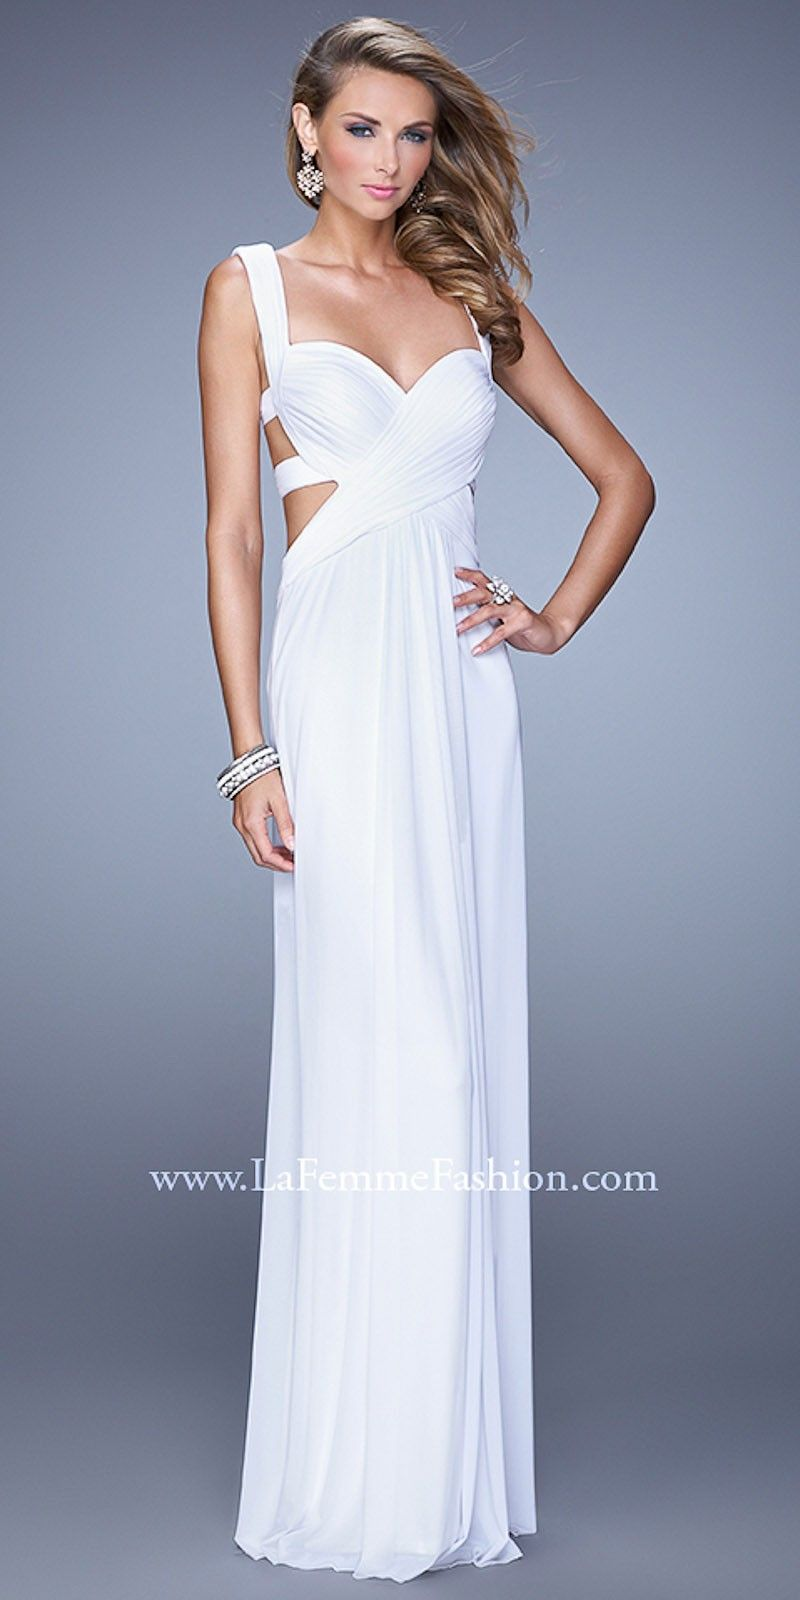 Gathered jersey prom dresses by la femmeimage a girl can dream